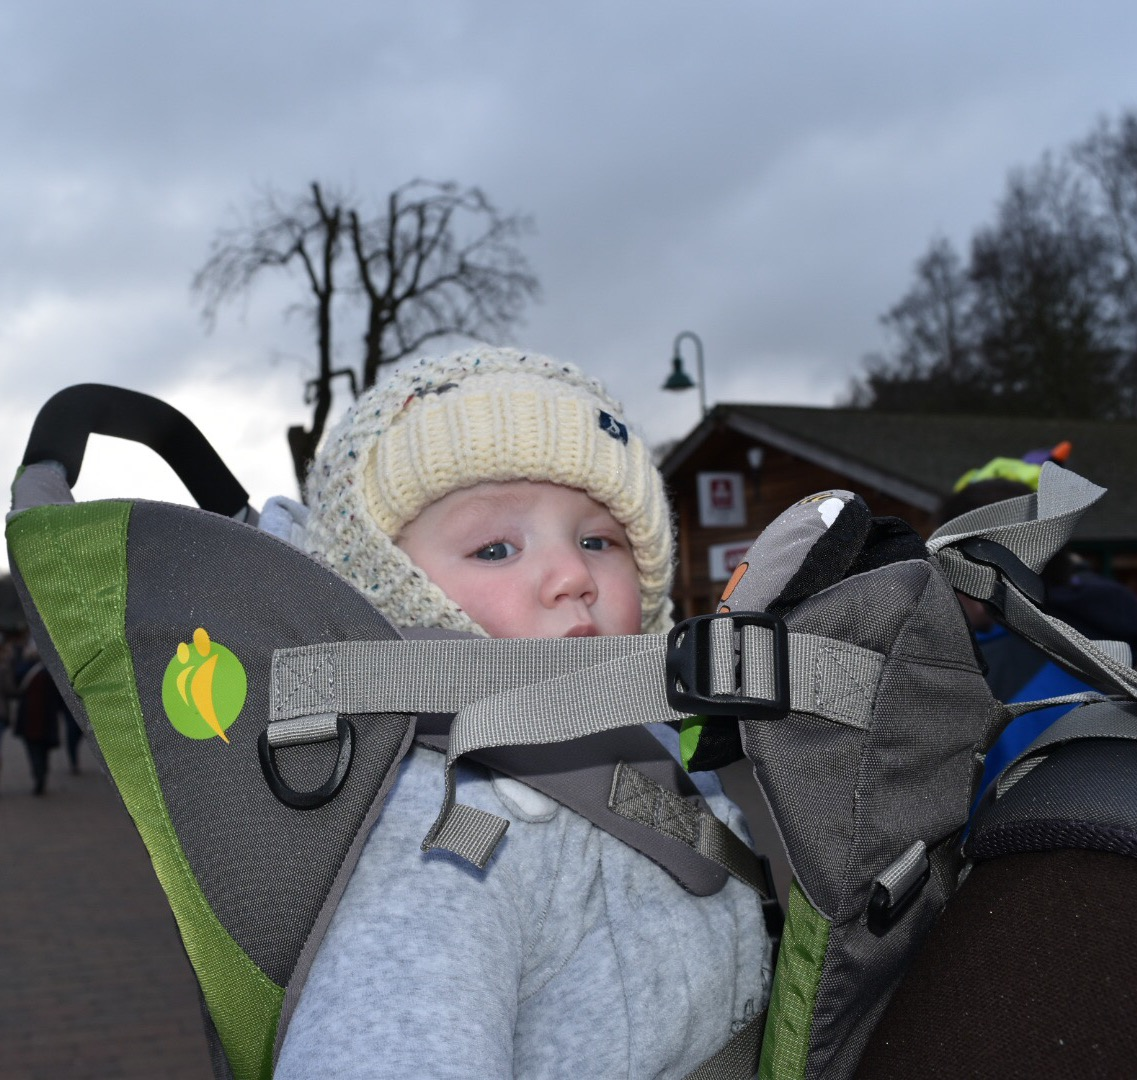 Winter Walks, Scooters and Introducing our Little Adventurer